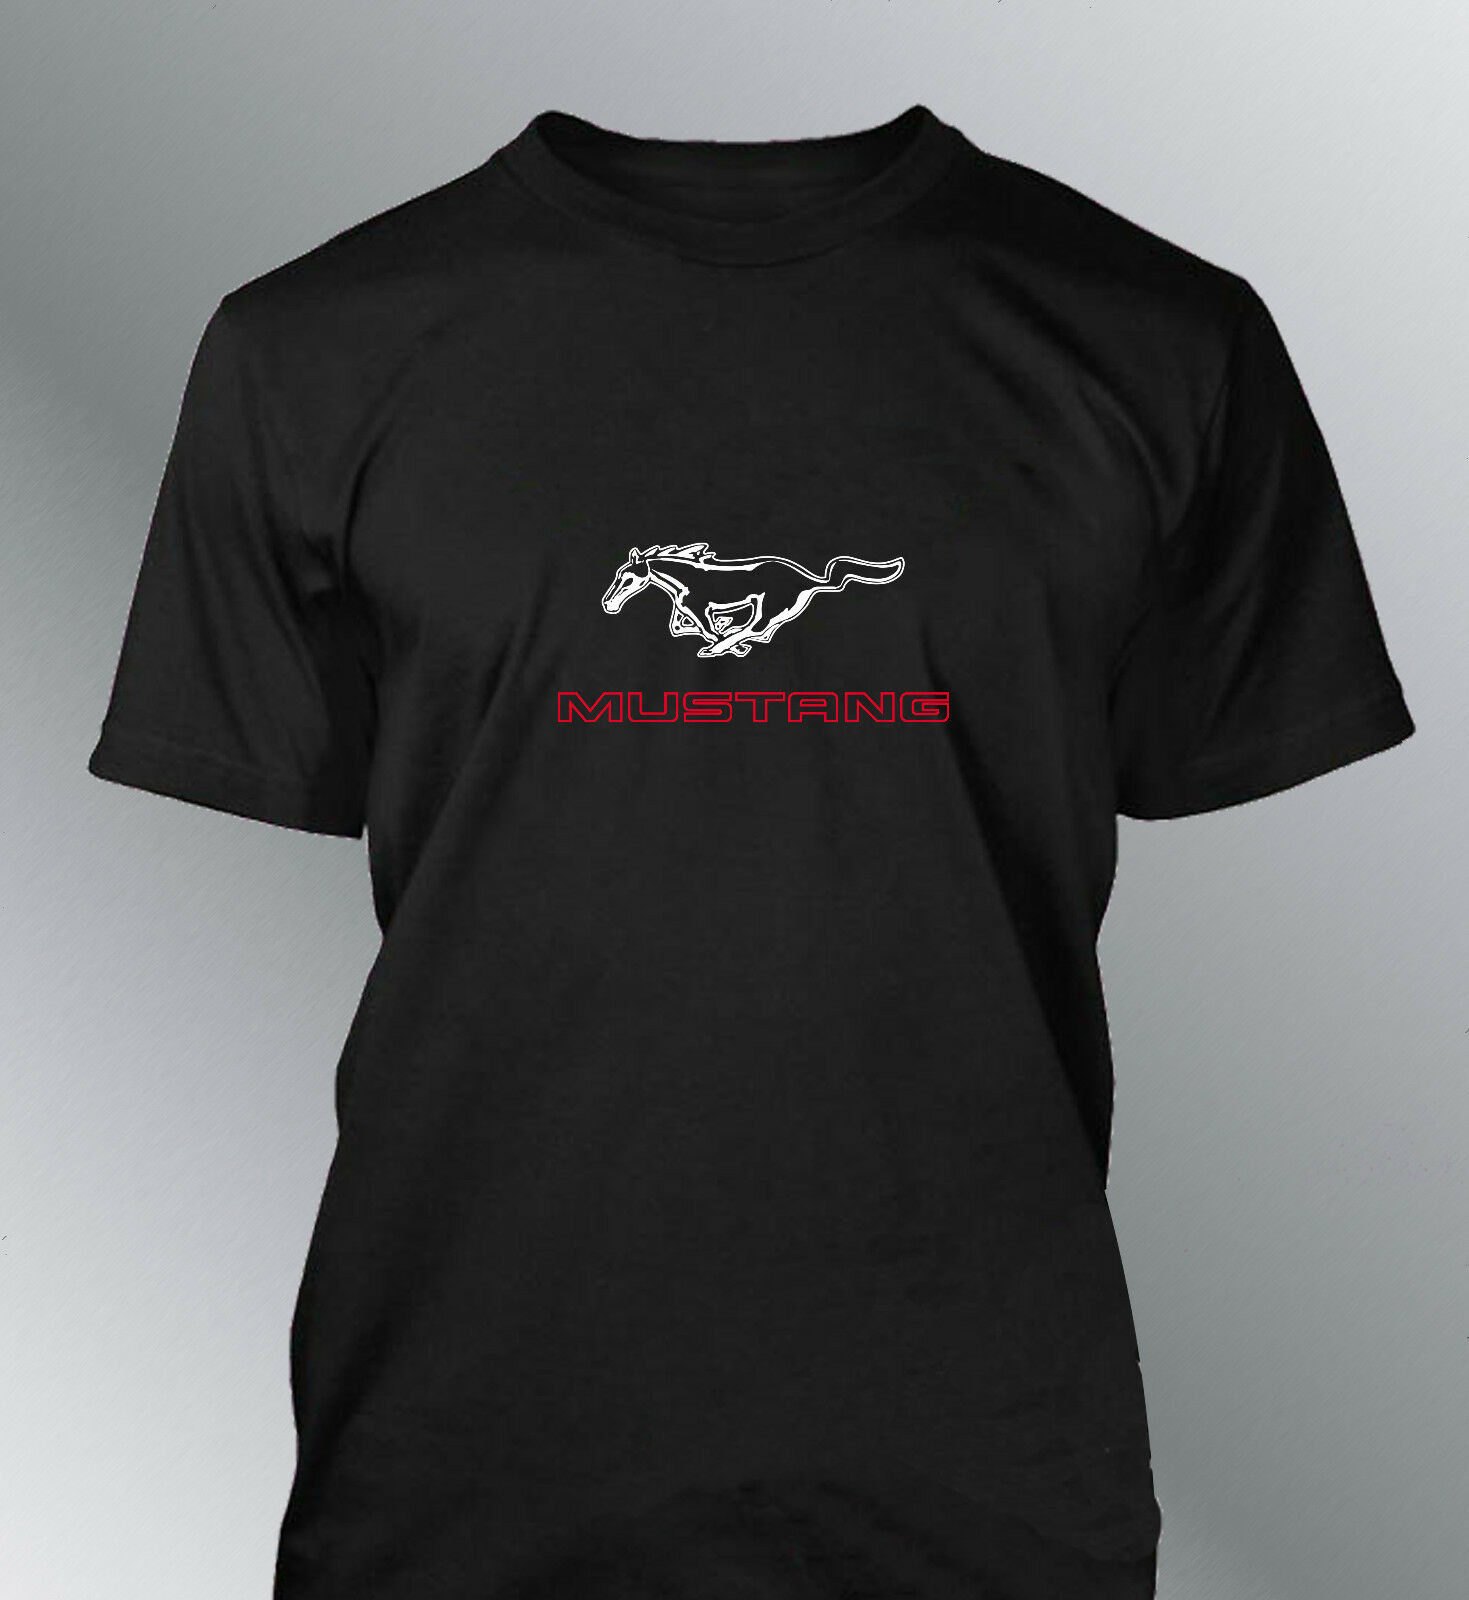 Camiseta Personalizado Mustang Hombre Gt500 Shelby Muscle Coche Motorycle Unisex Tees